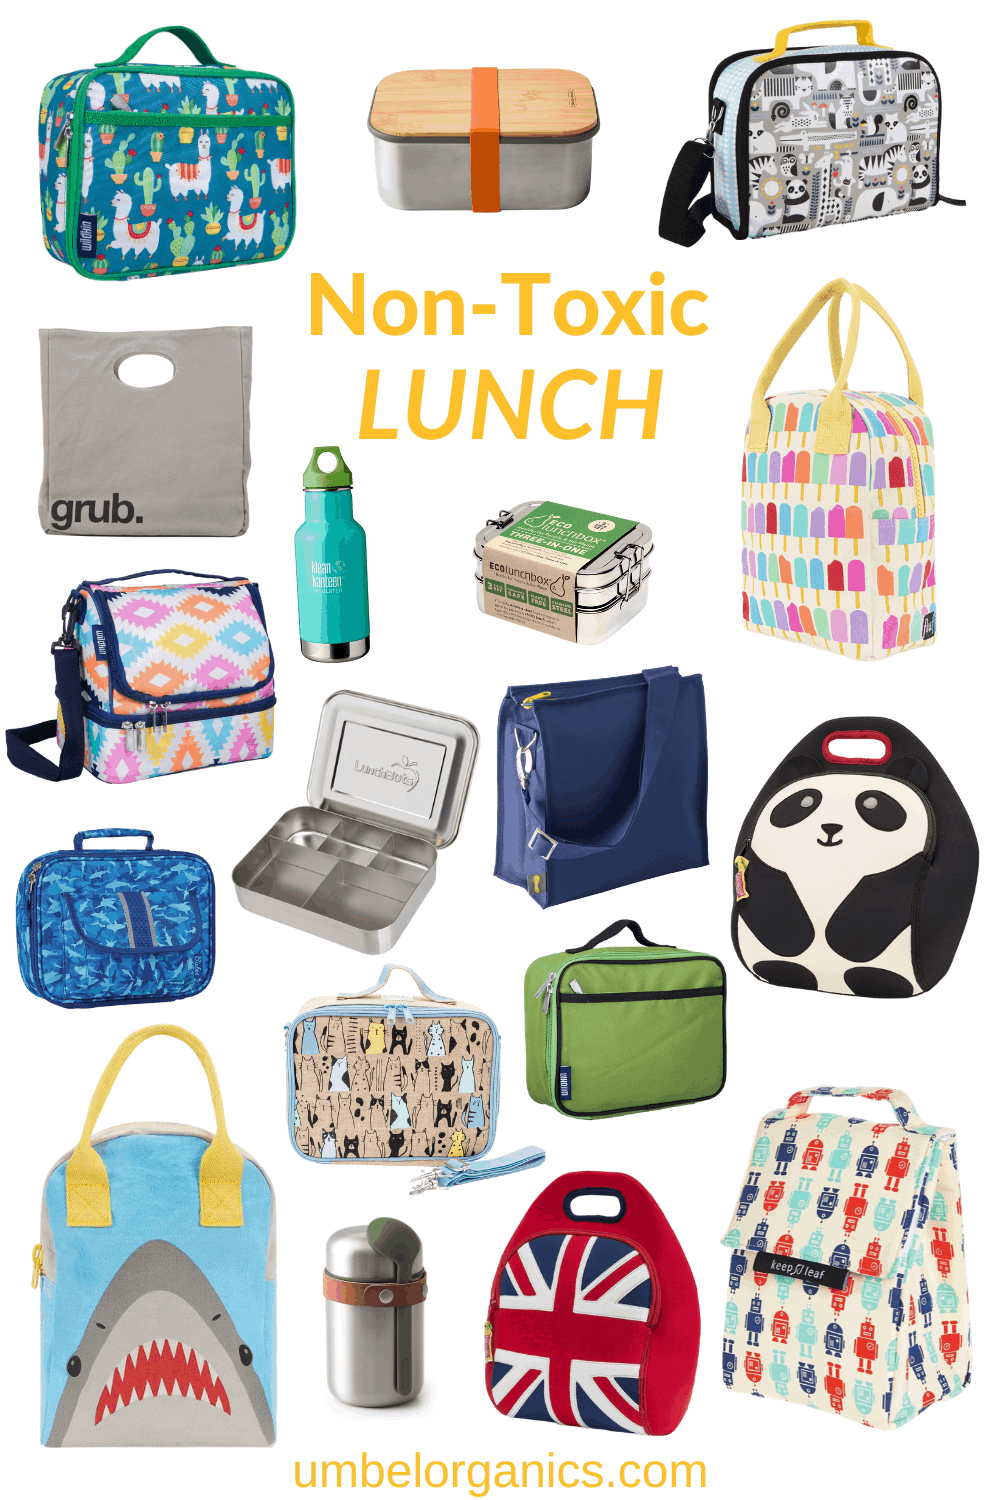 Back To School Non-Toxic Lunch Gear